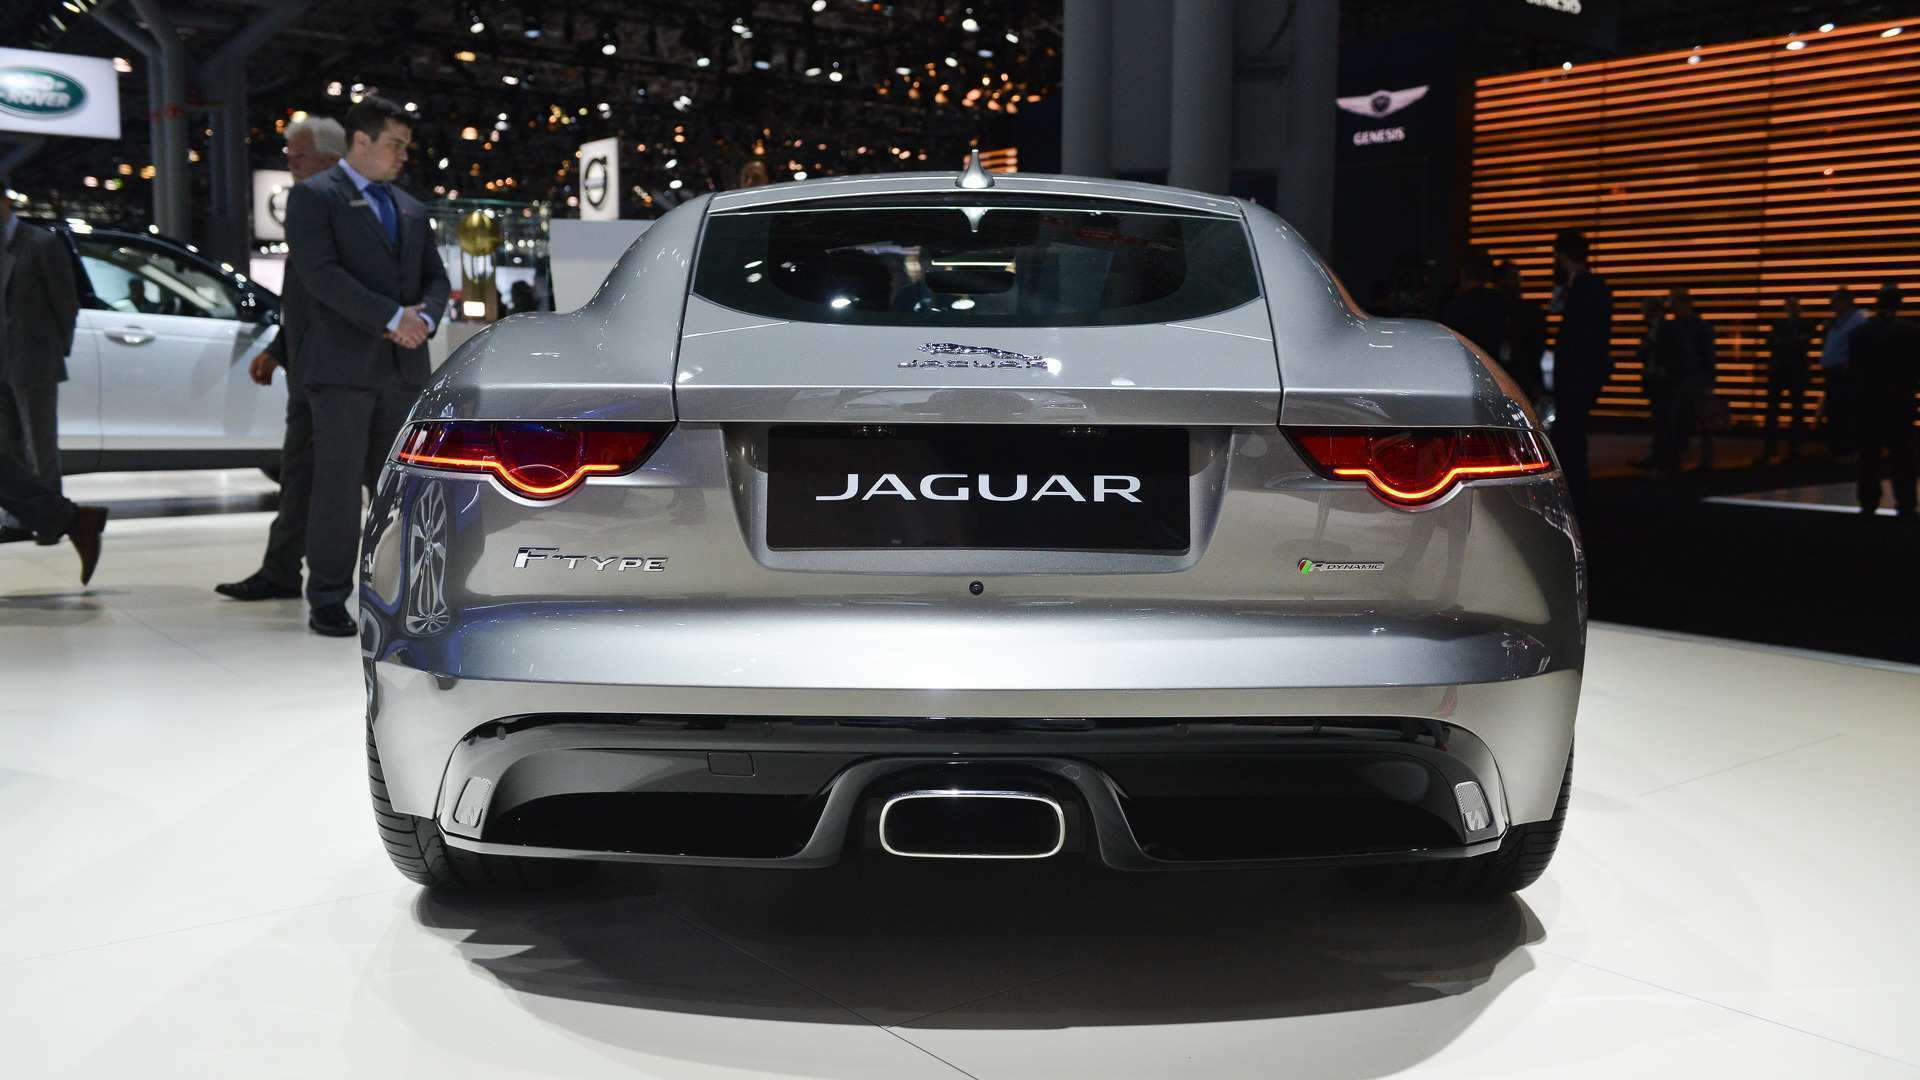 41 All New 2020 Jaguar F Type Price